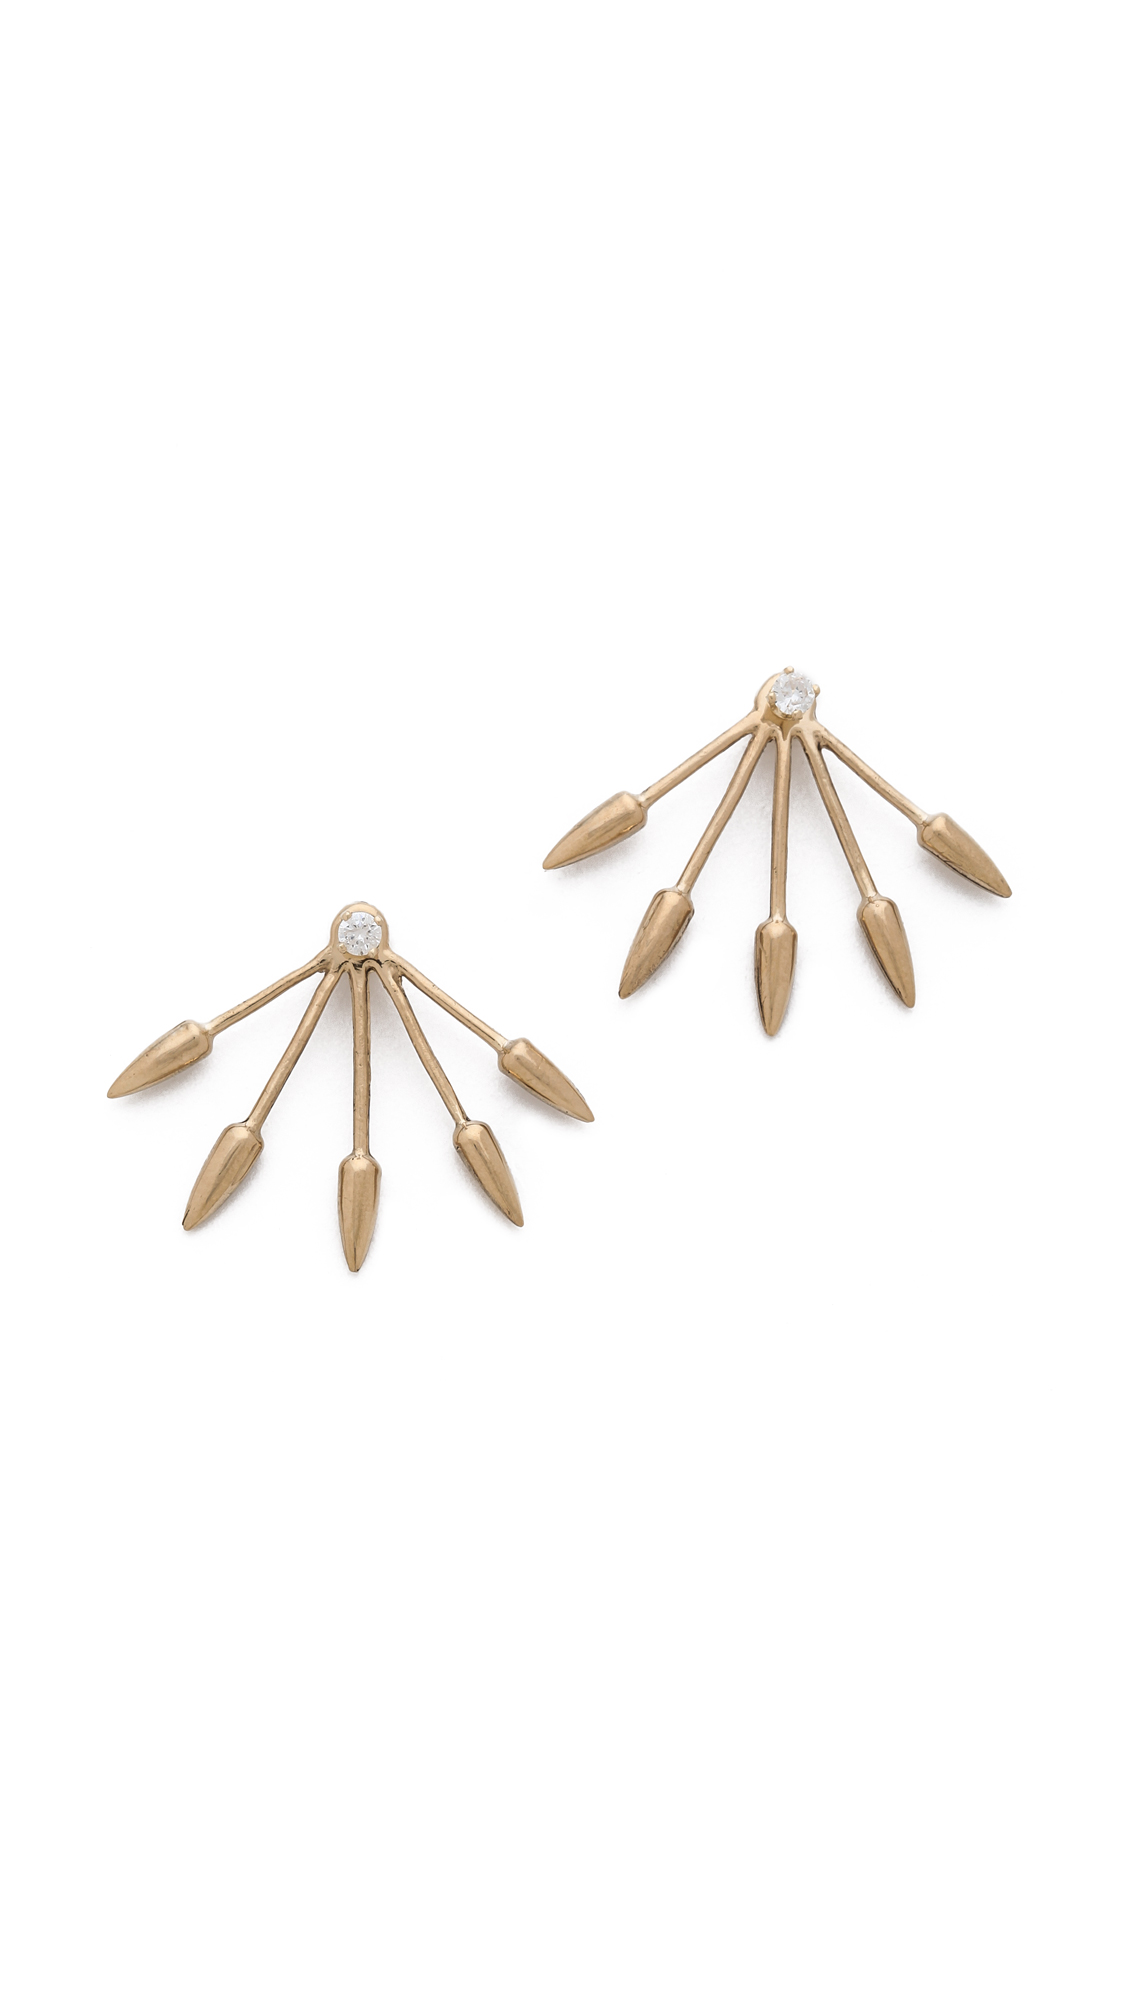 five spike stud earrings in gold gold